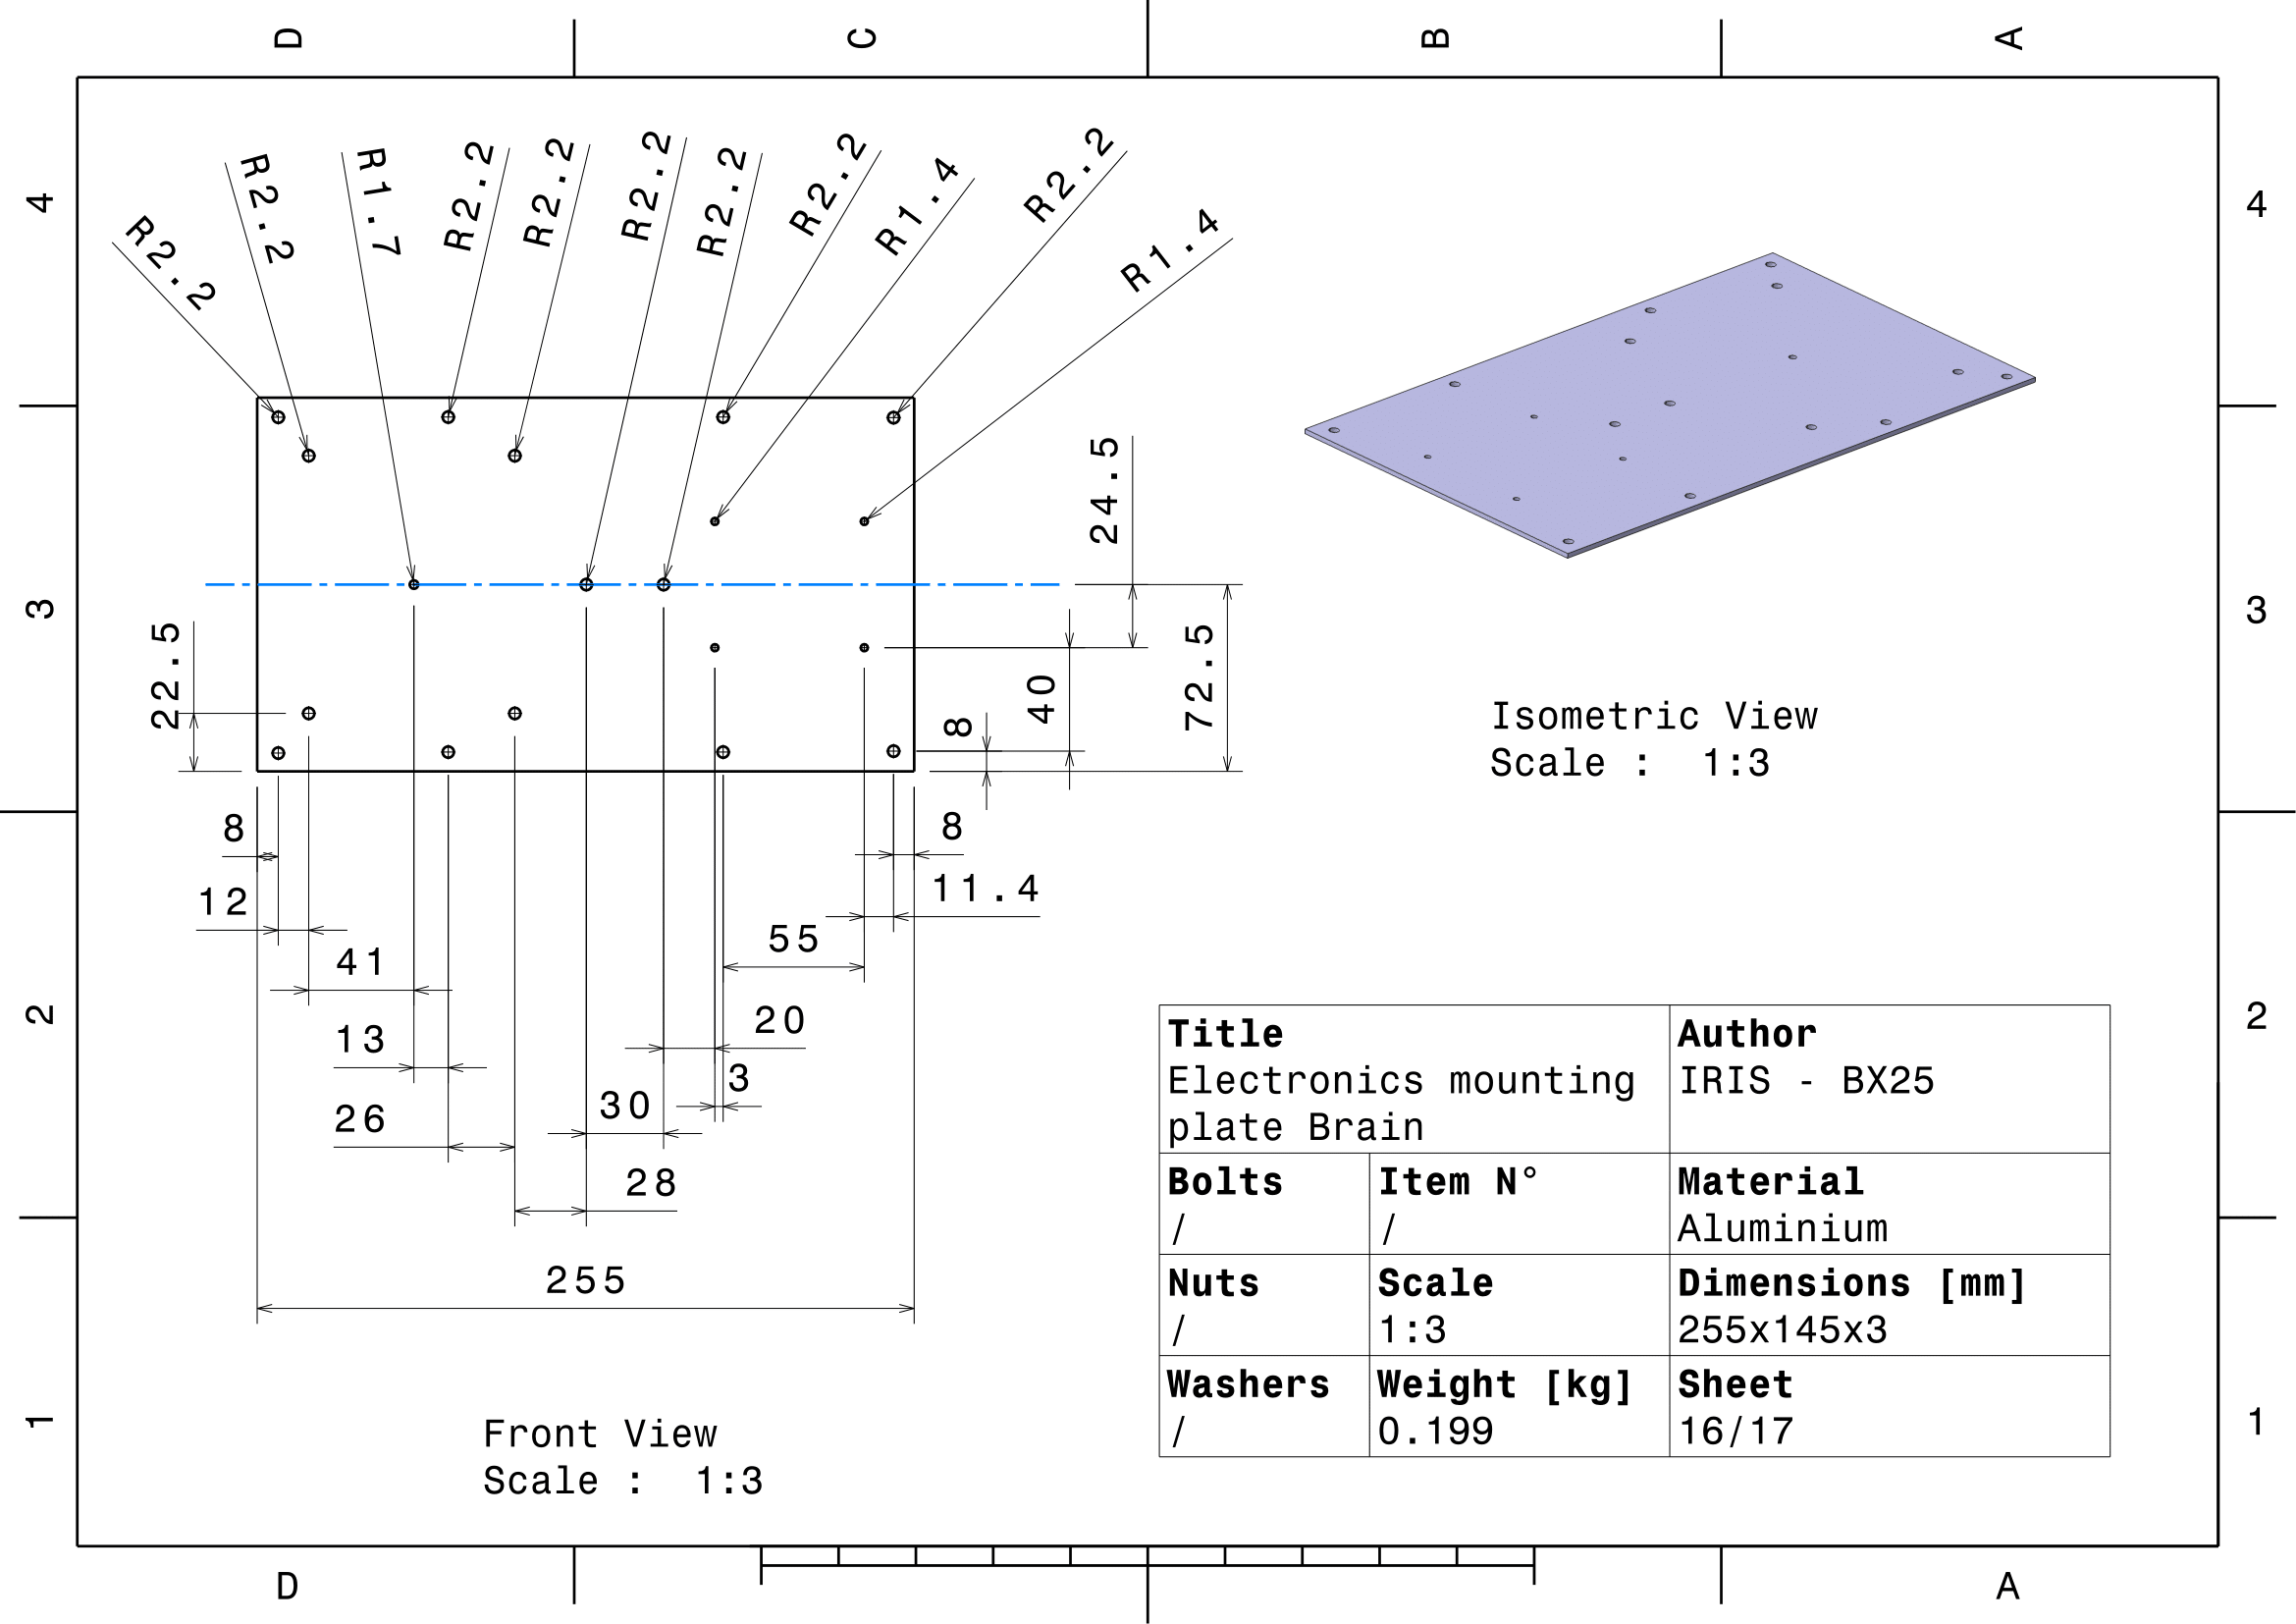 BX25_IRIS_SEDv32_Technical_Drawing-16